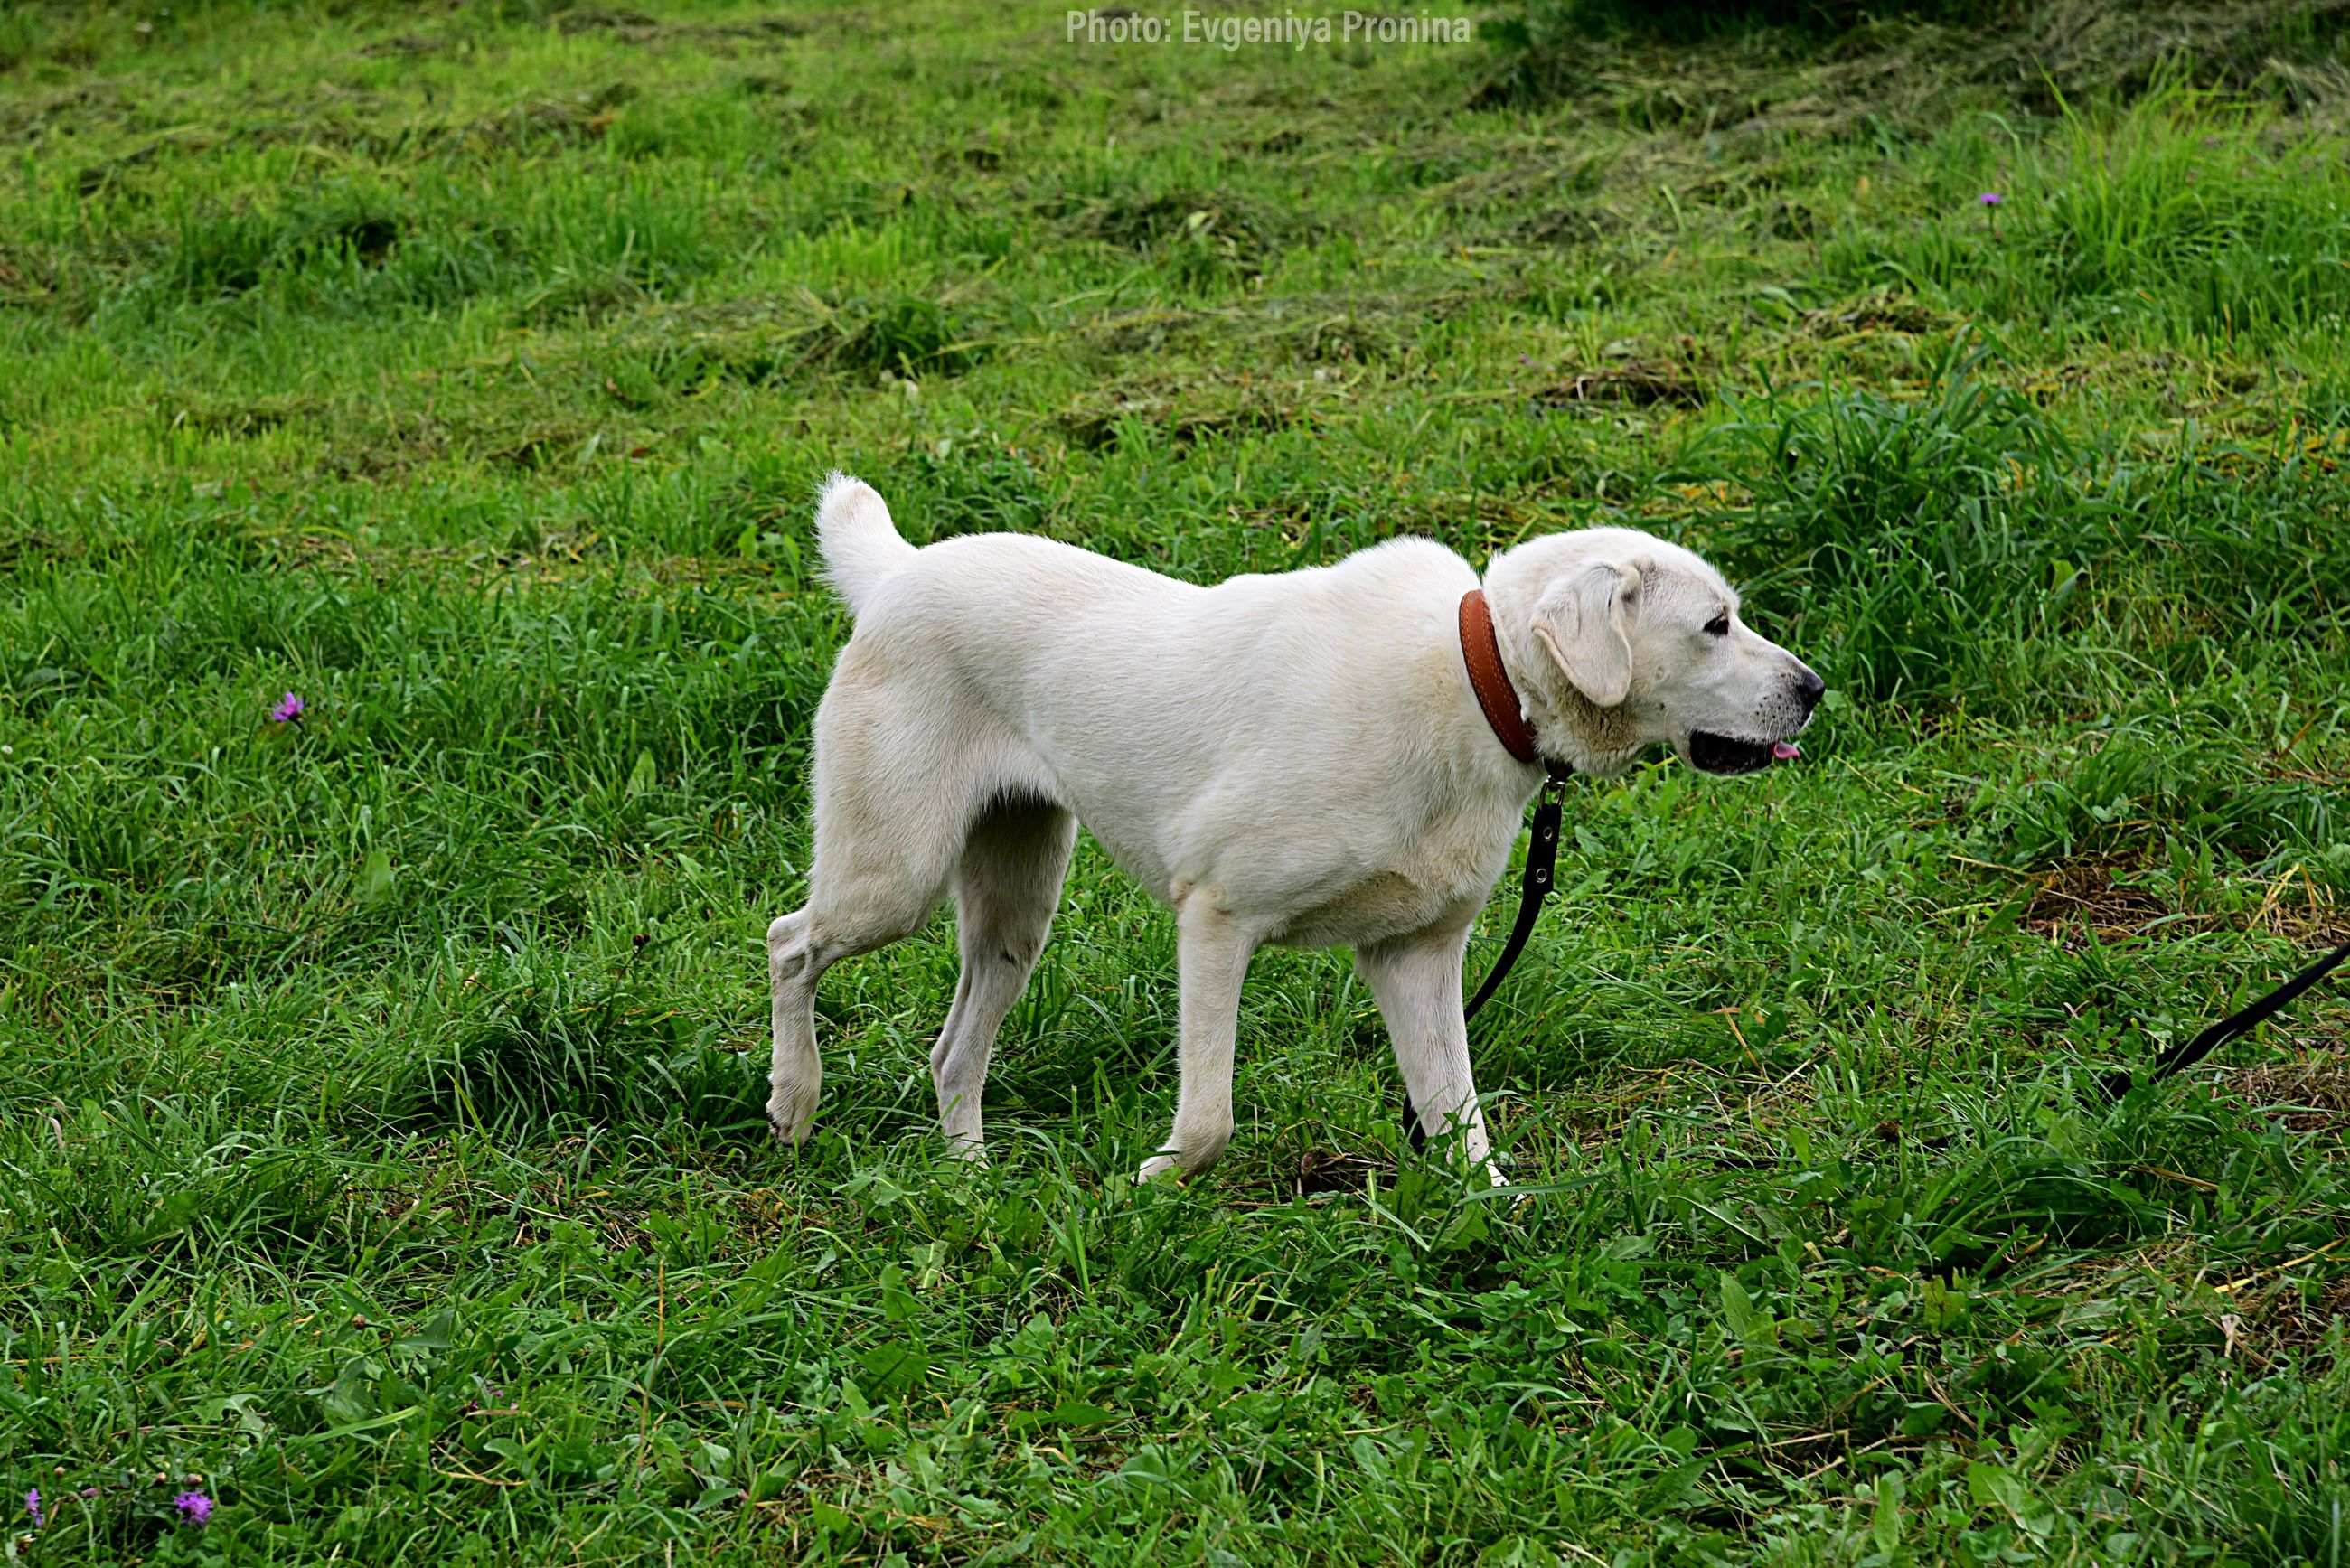 domestic, pets, domestic animals, one animal, animal themes, mammal, animal, canine, dog, grass, plant, vertebrate, land, field, green color, nature, no people, standing, full length, day